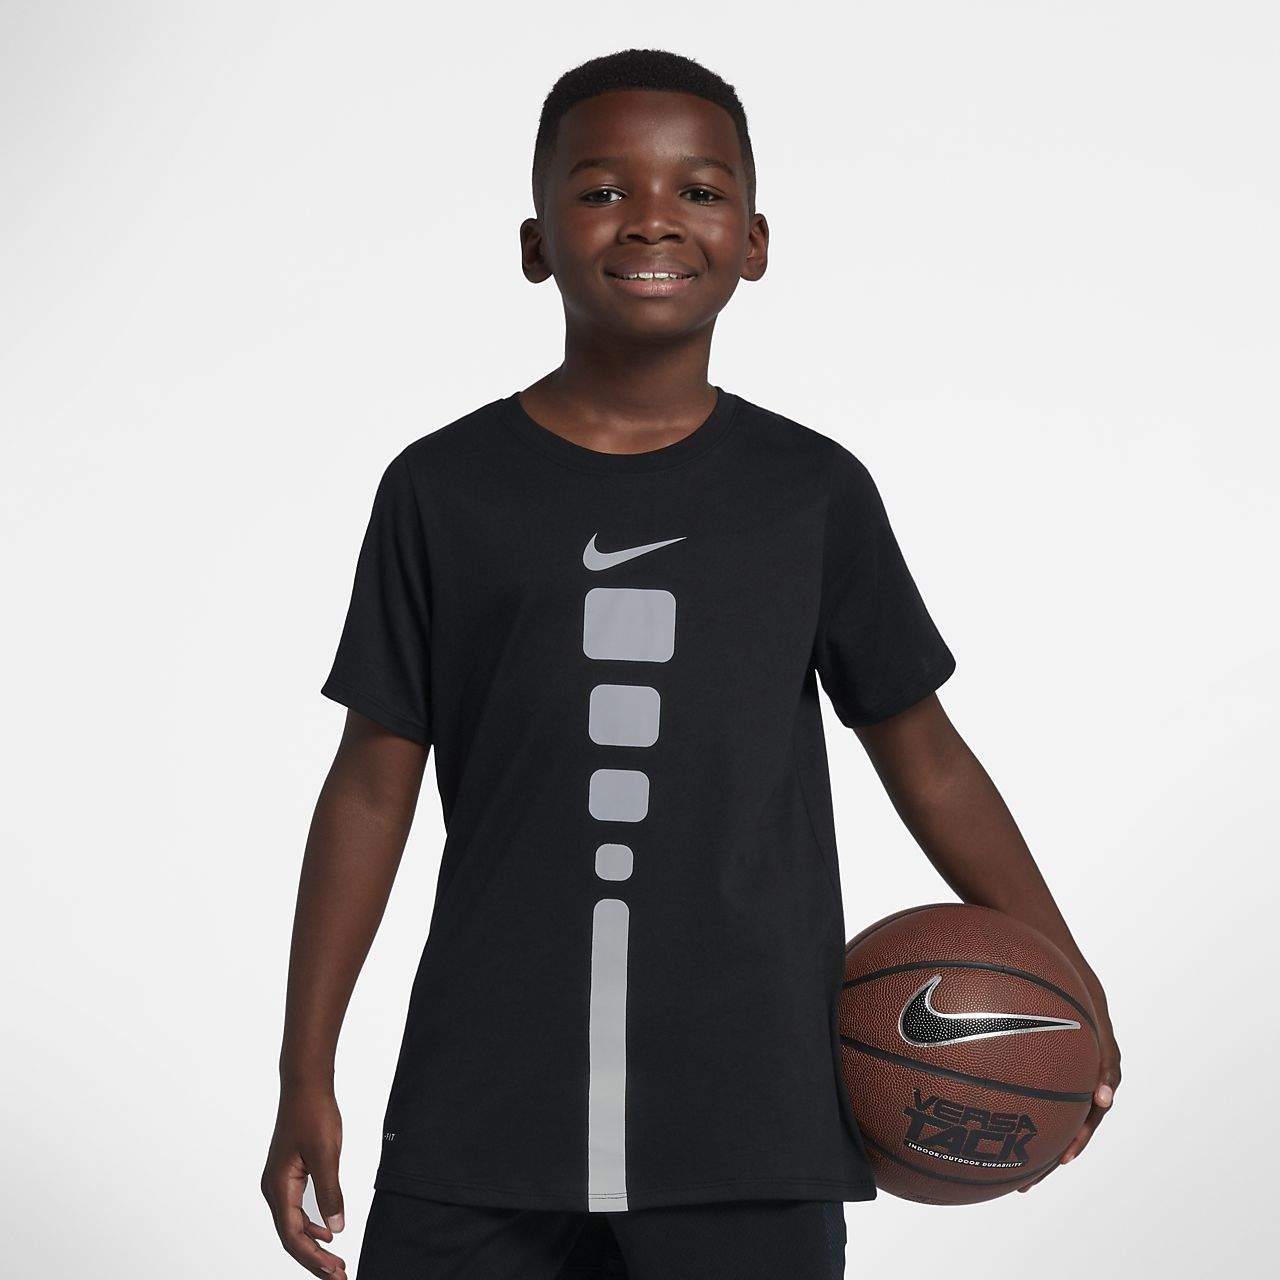 b0db91377e47 Nike Dri-FIT Elite Big Kids  (Boys ) Basketball T-Shirt. Nike.com